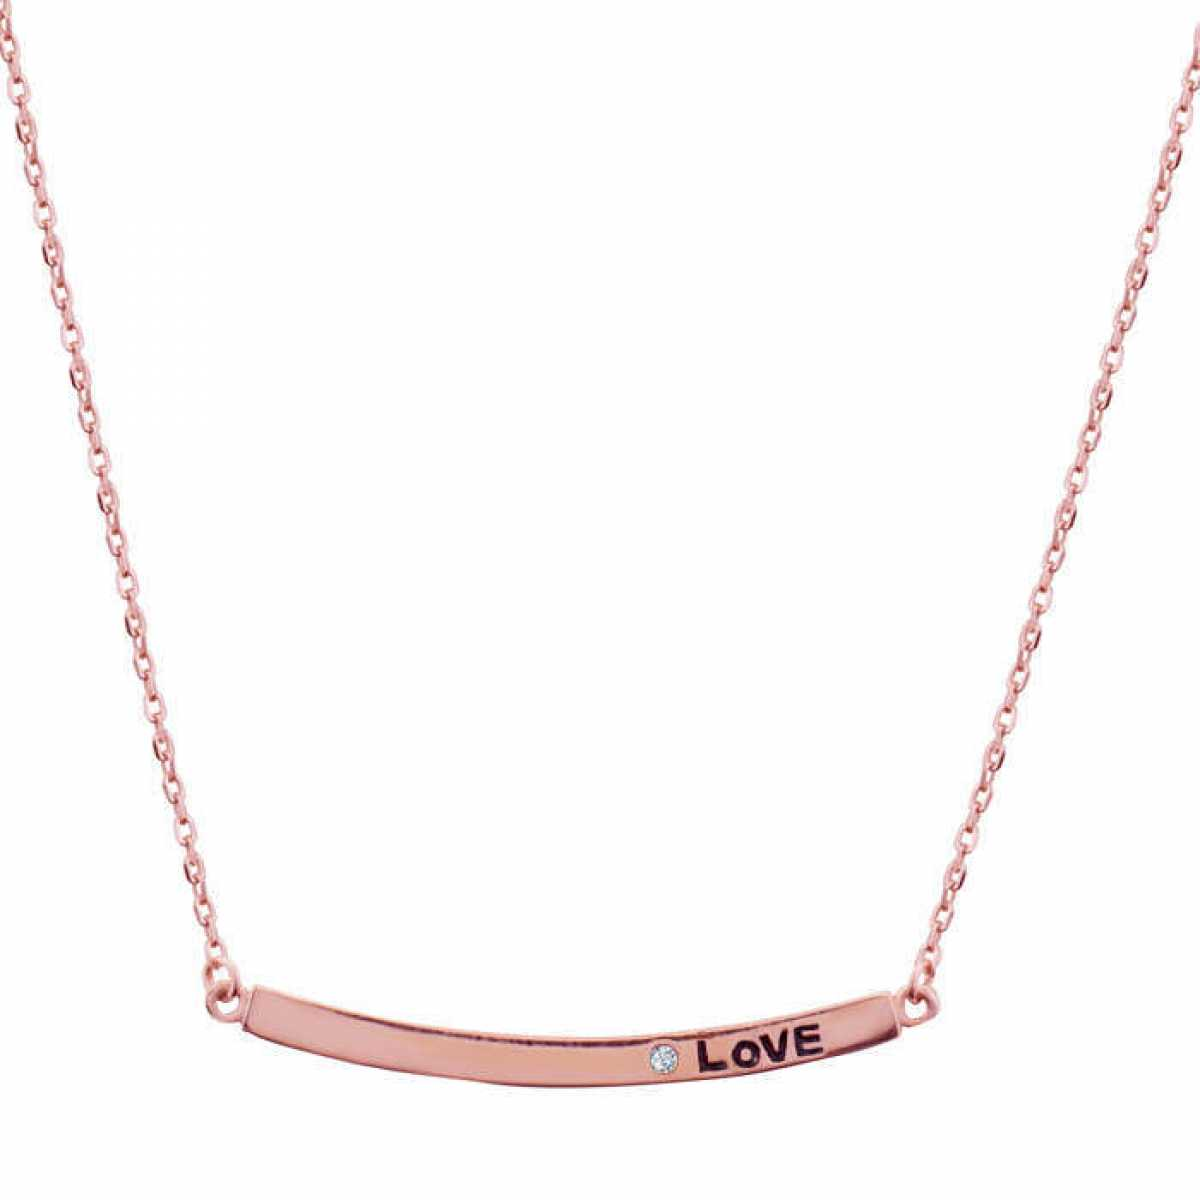 Love Single Diamond Chain